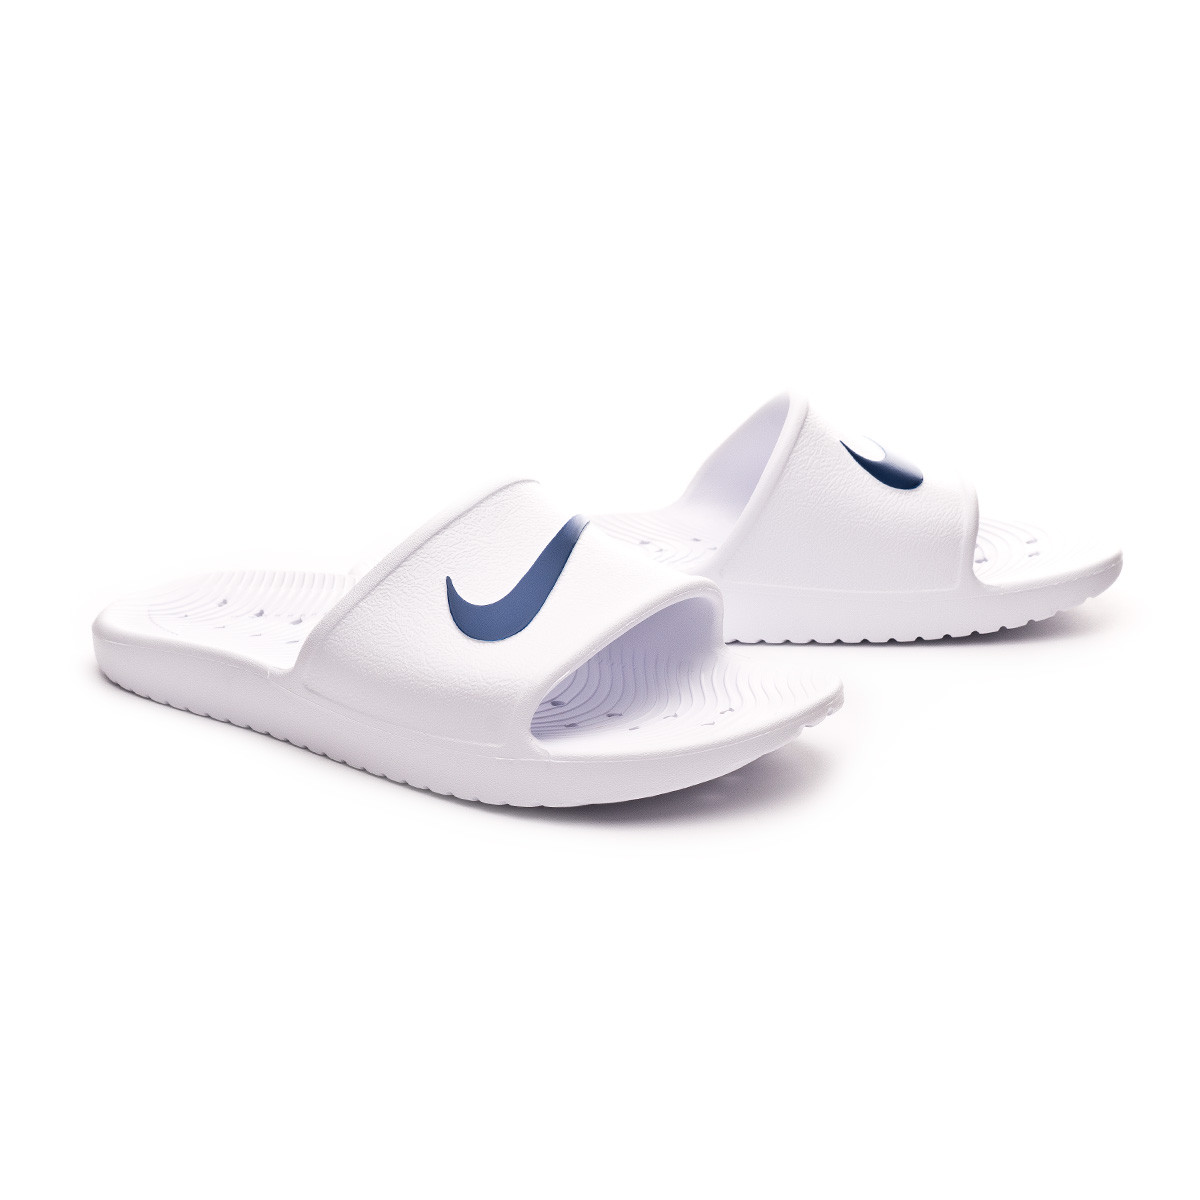 018d26ed7 Flip-flops Nike Kawa Shower White-Blue moon - Football store Fútbol ...